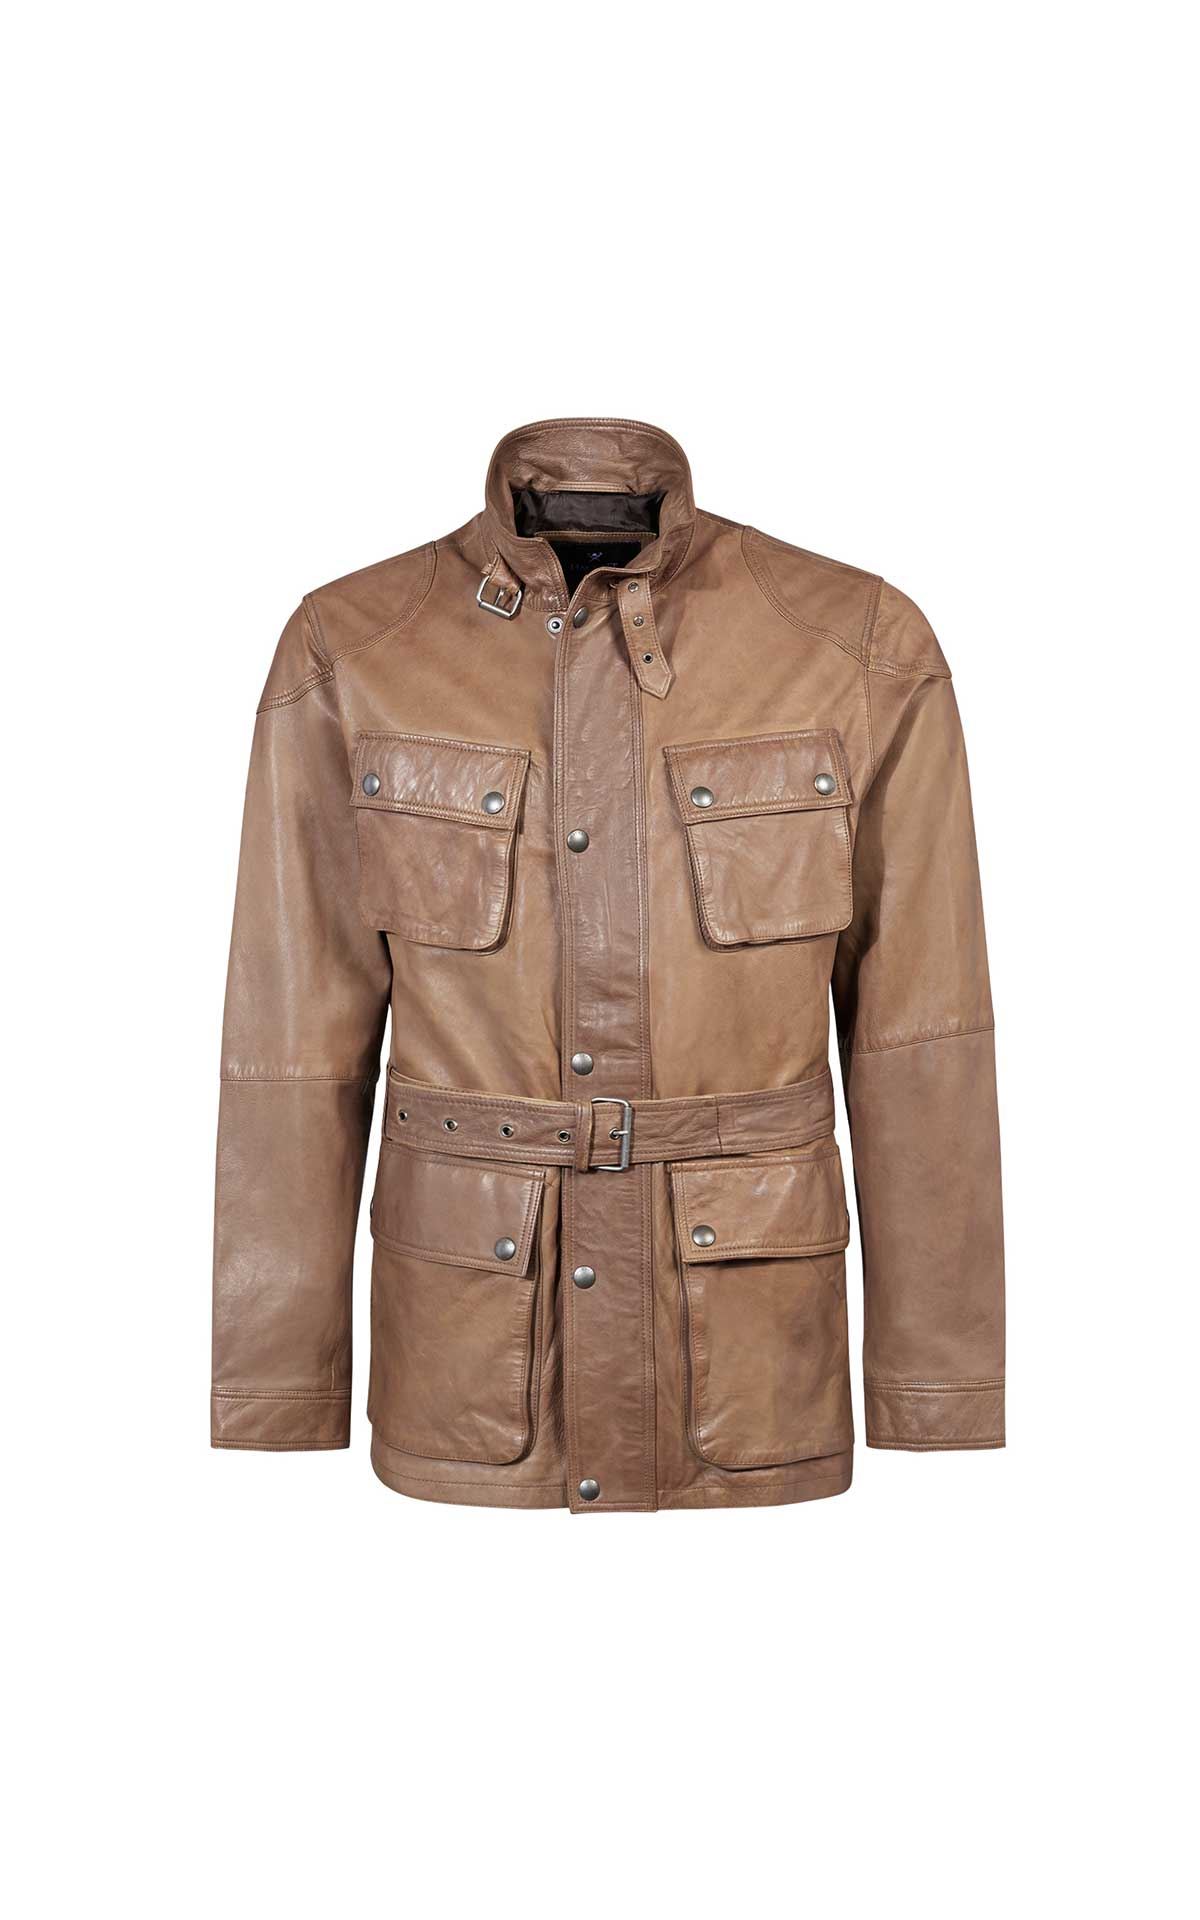 Camel leather jacket for men from Hackett